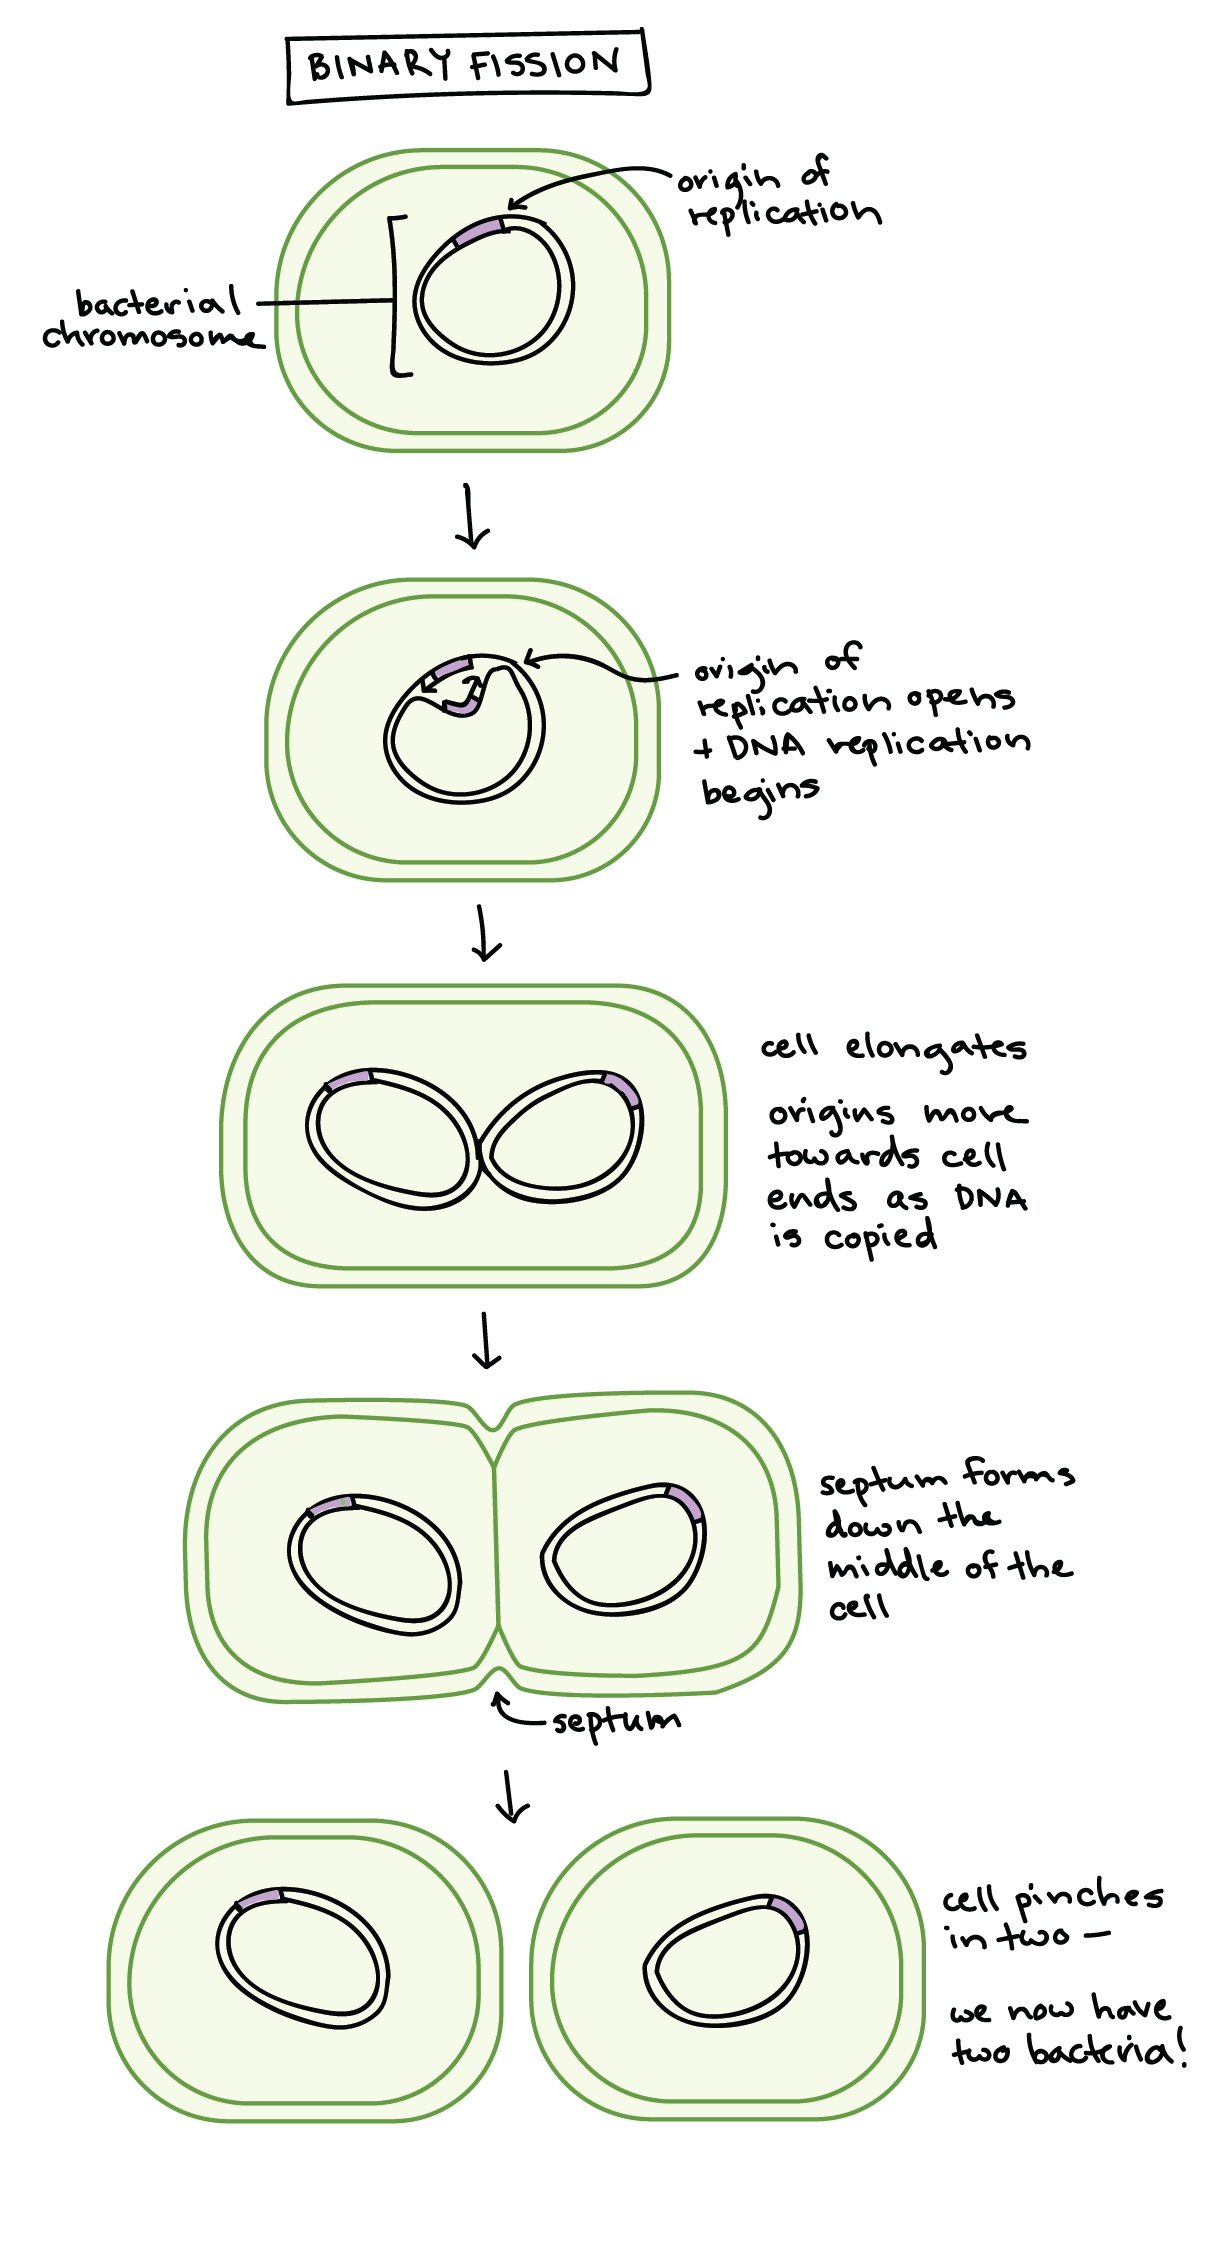 Bacterial Binary Fission The Cell Cycle And Mitosis Article Animal Plant Cells Diagram For Kids Wall Found In Stages Of 1 We See Intact Chromosome Which Is